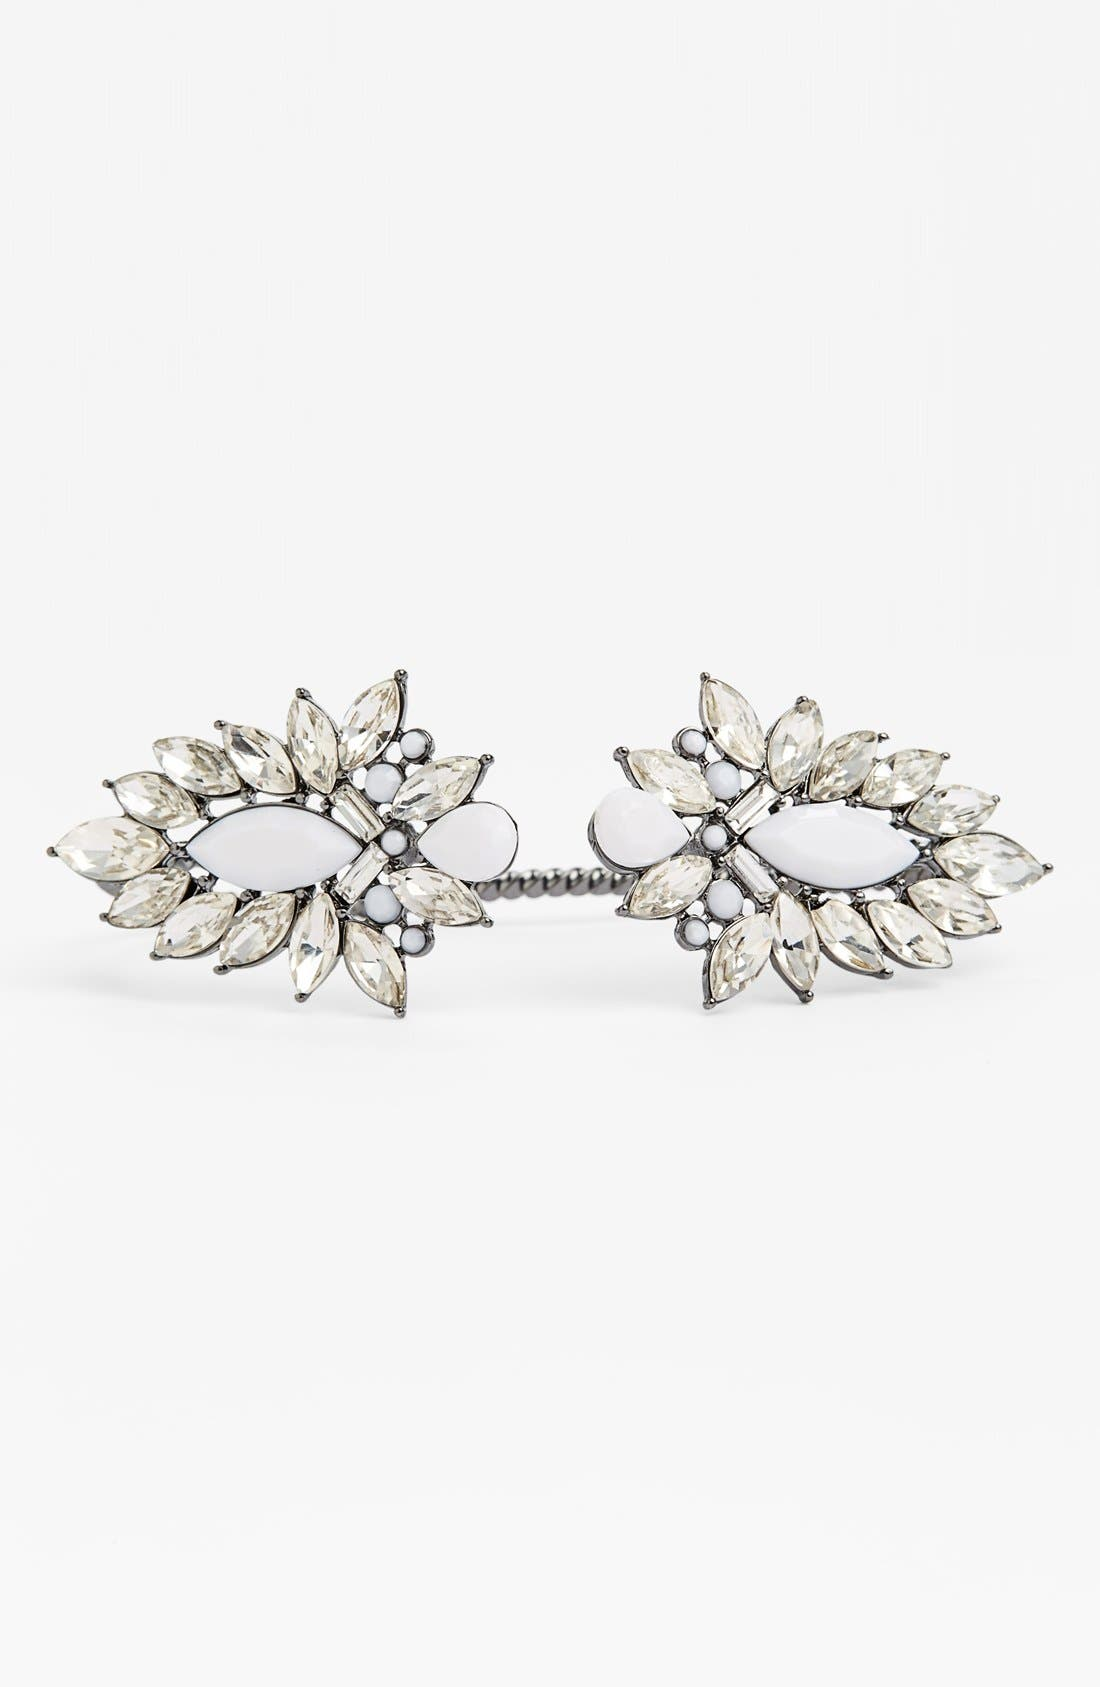 Couture Crystal Palm Cuff,                         Main,                         color, Hematite/ White